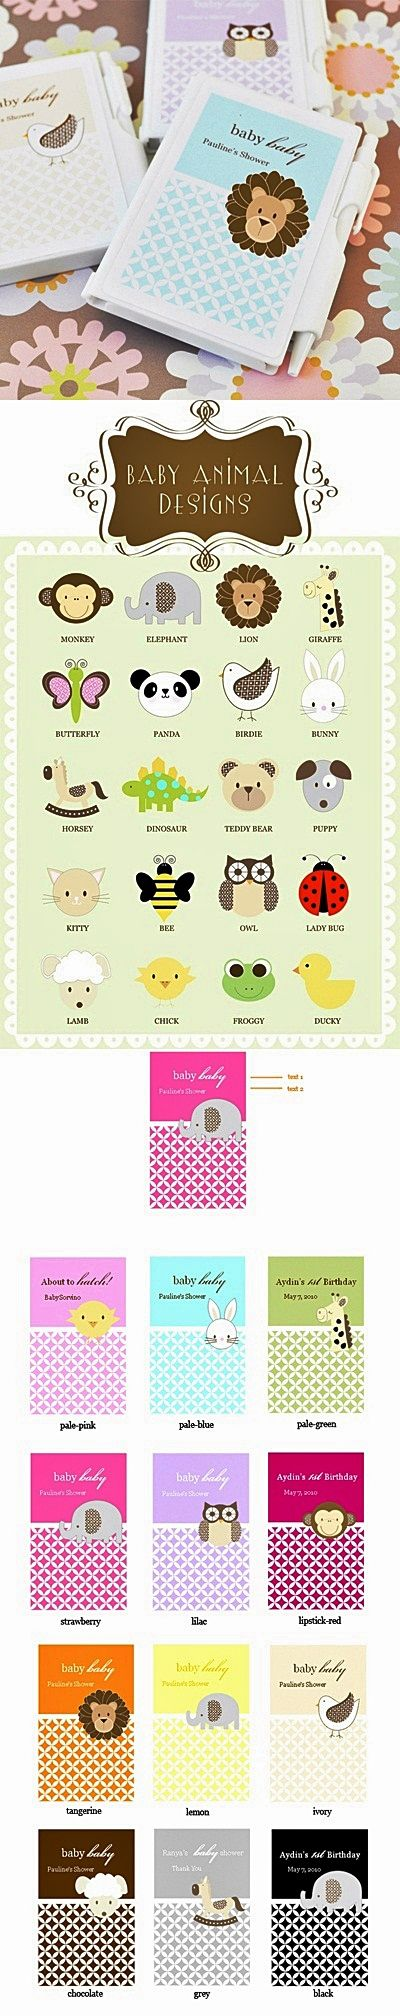 Darling Baby Animal-Themed Personalized Notebooks